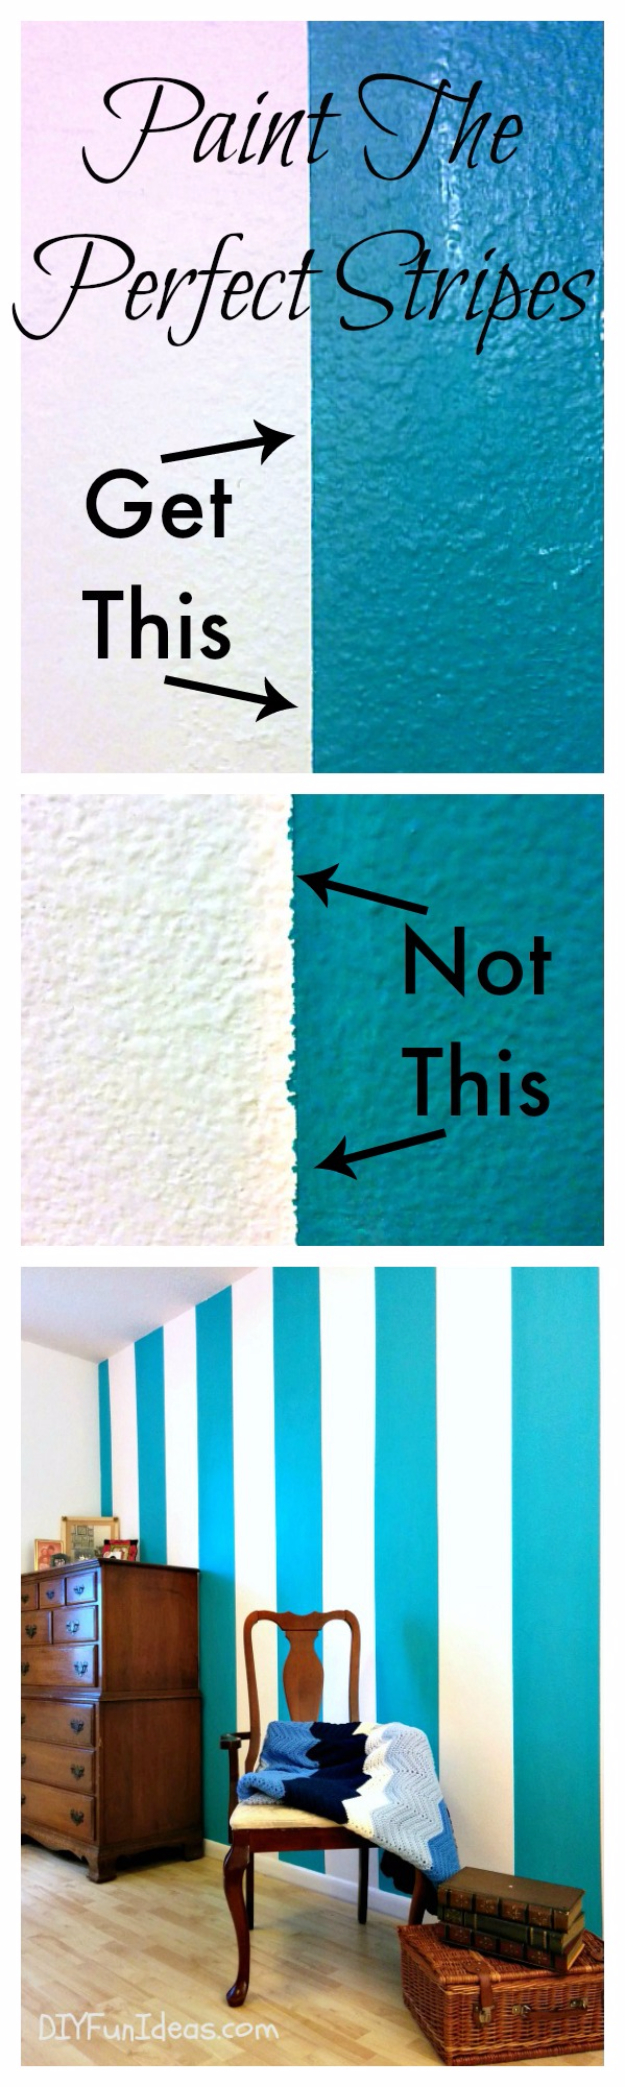 DIY Ideas for Painting Walls - Paint Sharp Lines And Perfect Stripes - Cool Ways To Paint Walls - Techniques, Tips, Stencils, Tutorials, Fun Colors and Creative Designs for Living Room, Bedroom, Kids Room, Bathroom and Kitchen #homeimprovement #diydecor #roomideas #teenrooms #walldecor #paintingideas